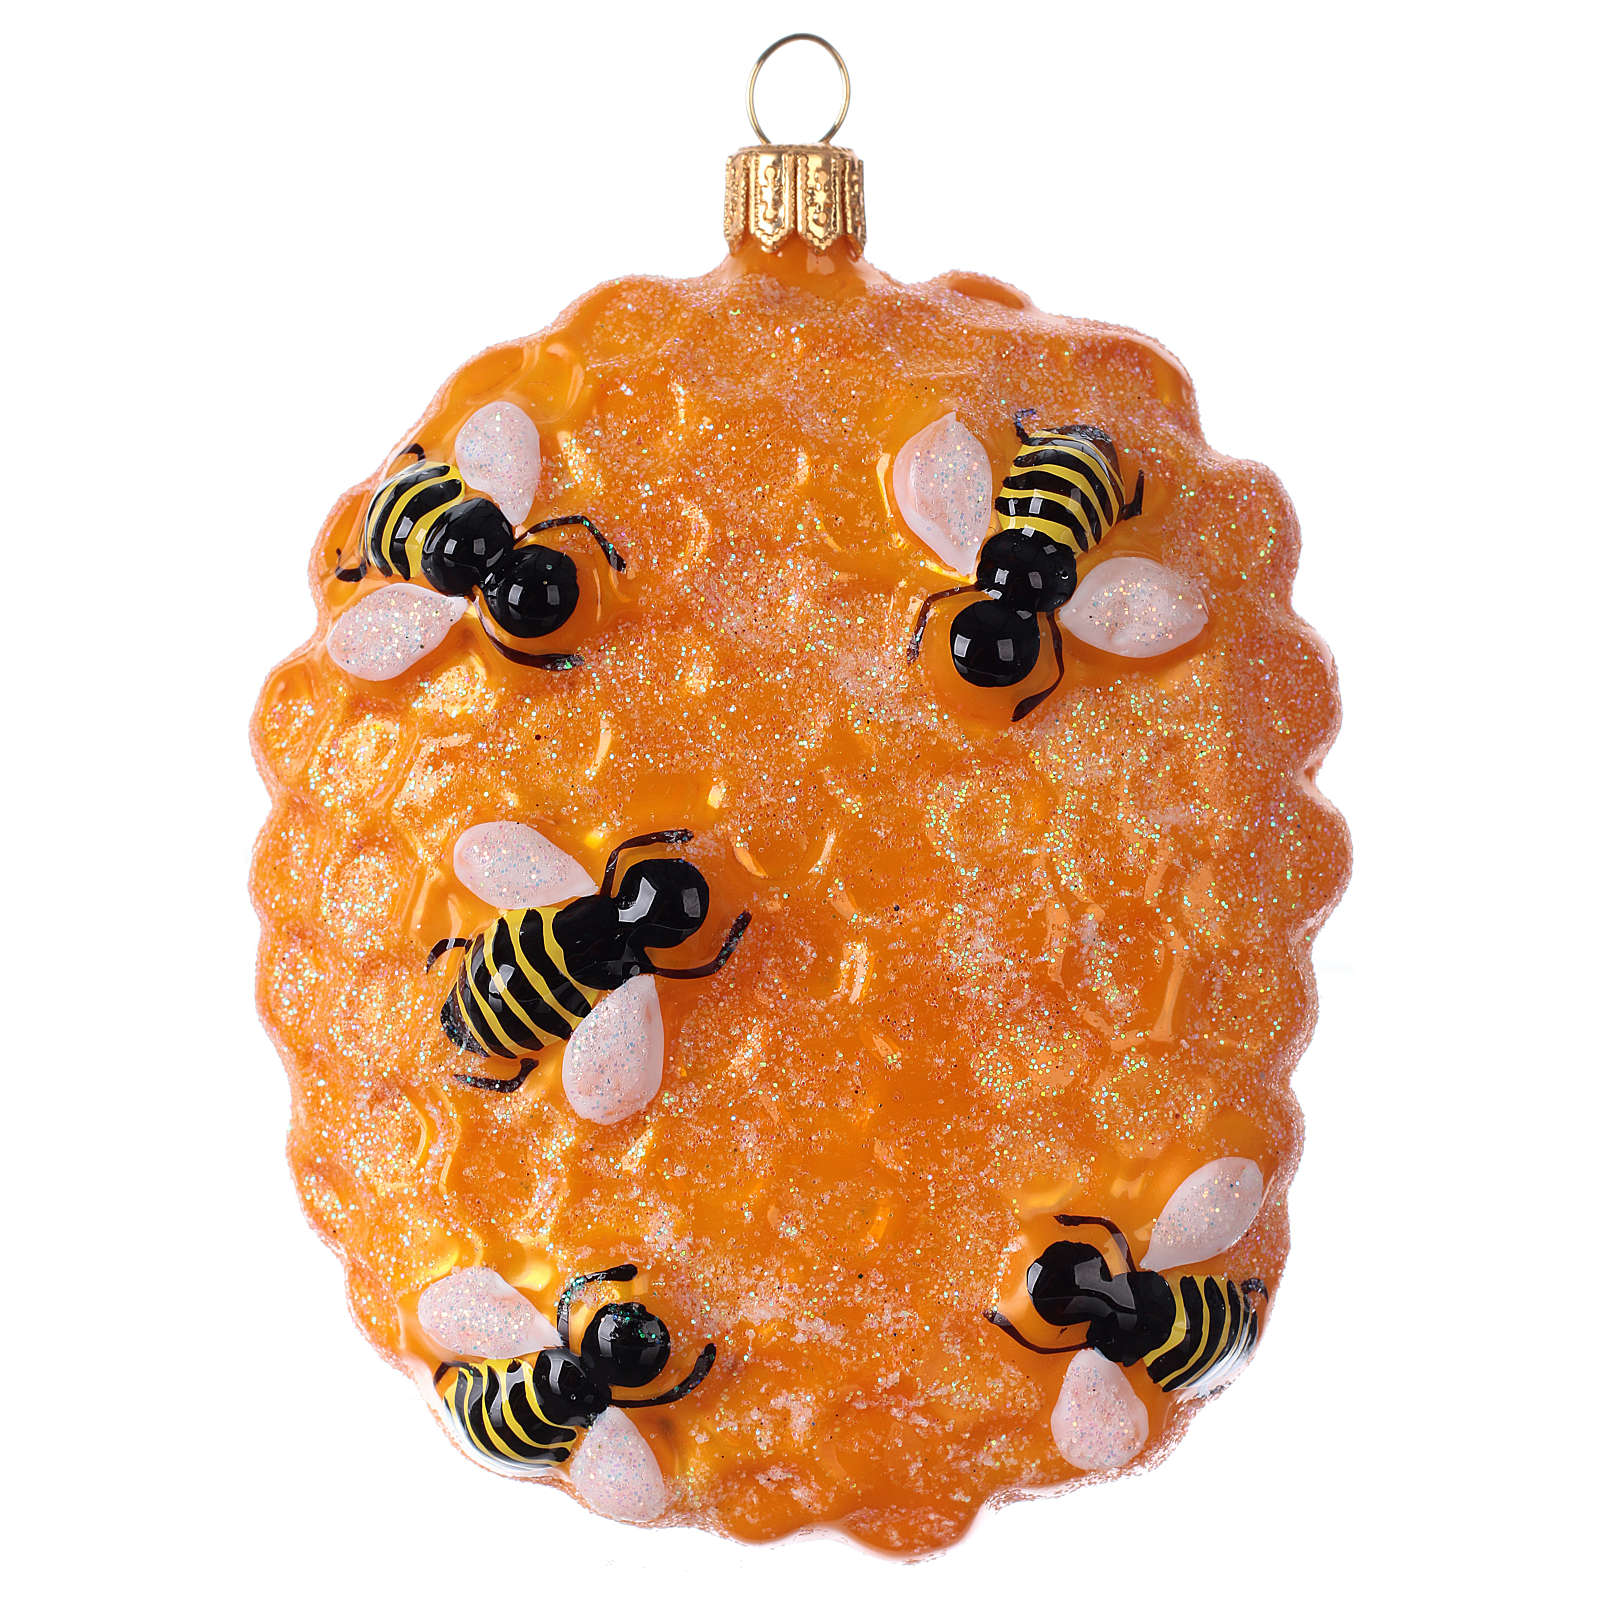 Beehive structure in blown glass for Christmas Tree 4